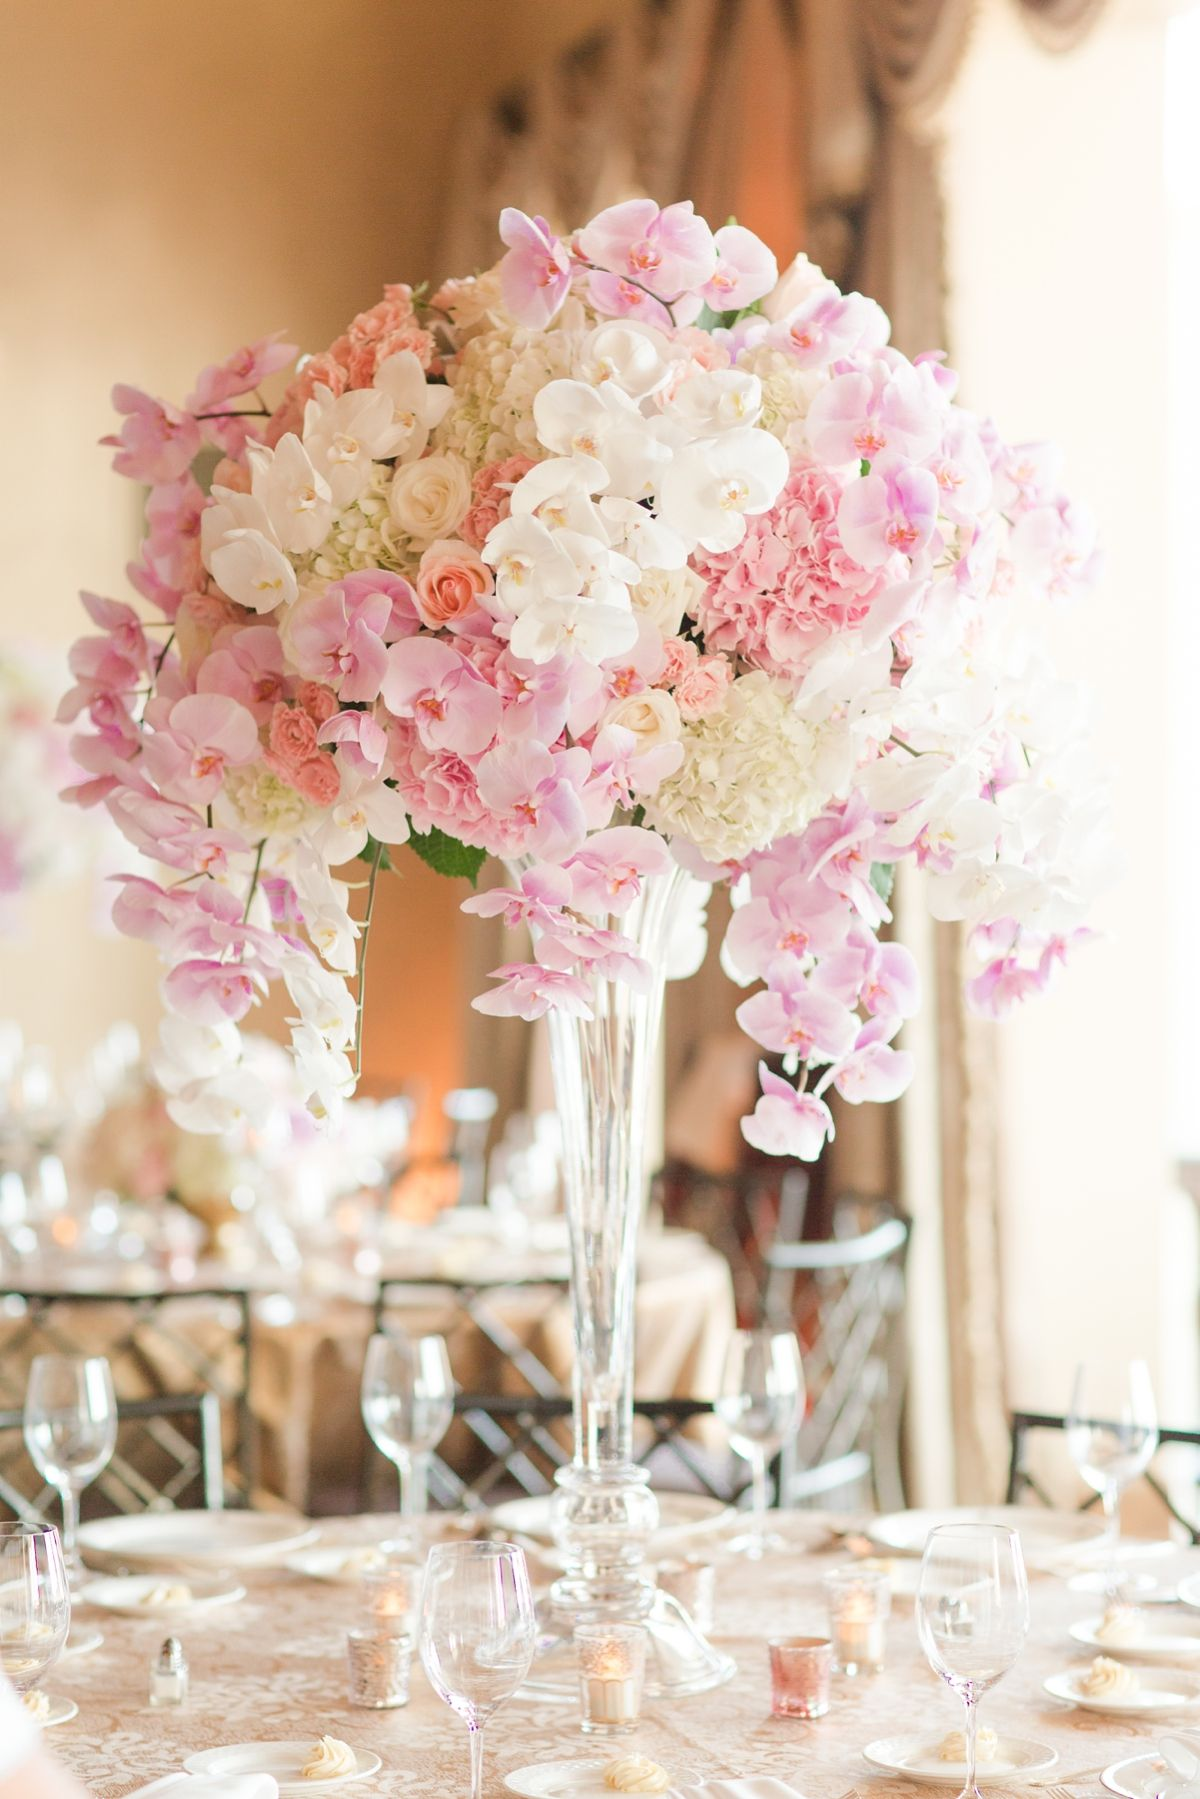 Floral Centerpieces To Die For Large Orchid Centerpieces Pink And